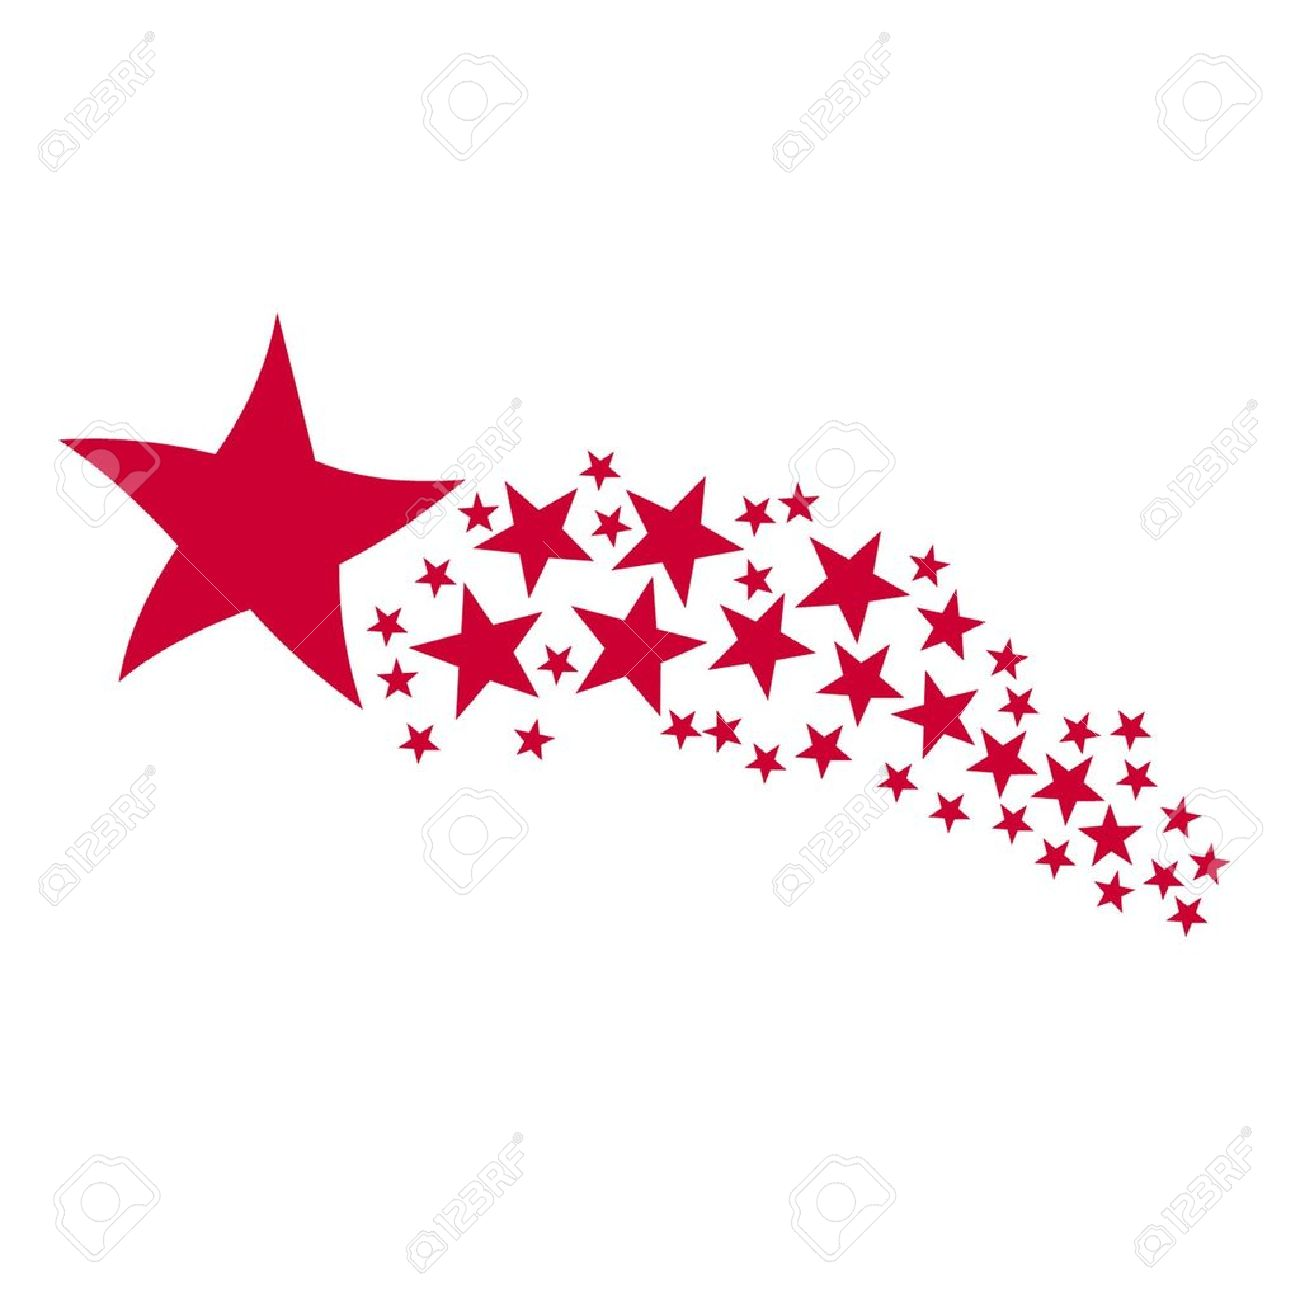 Shooting Star Stock Vector Illustration And Royalty Free Shooting